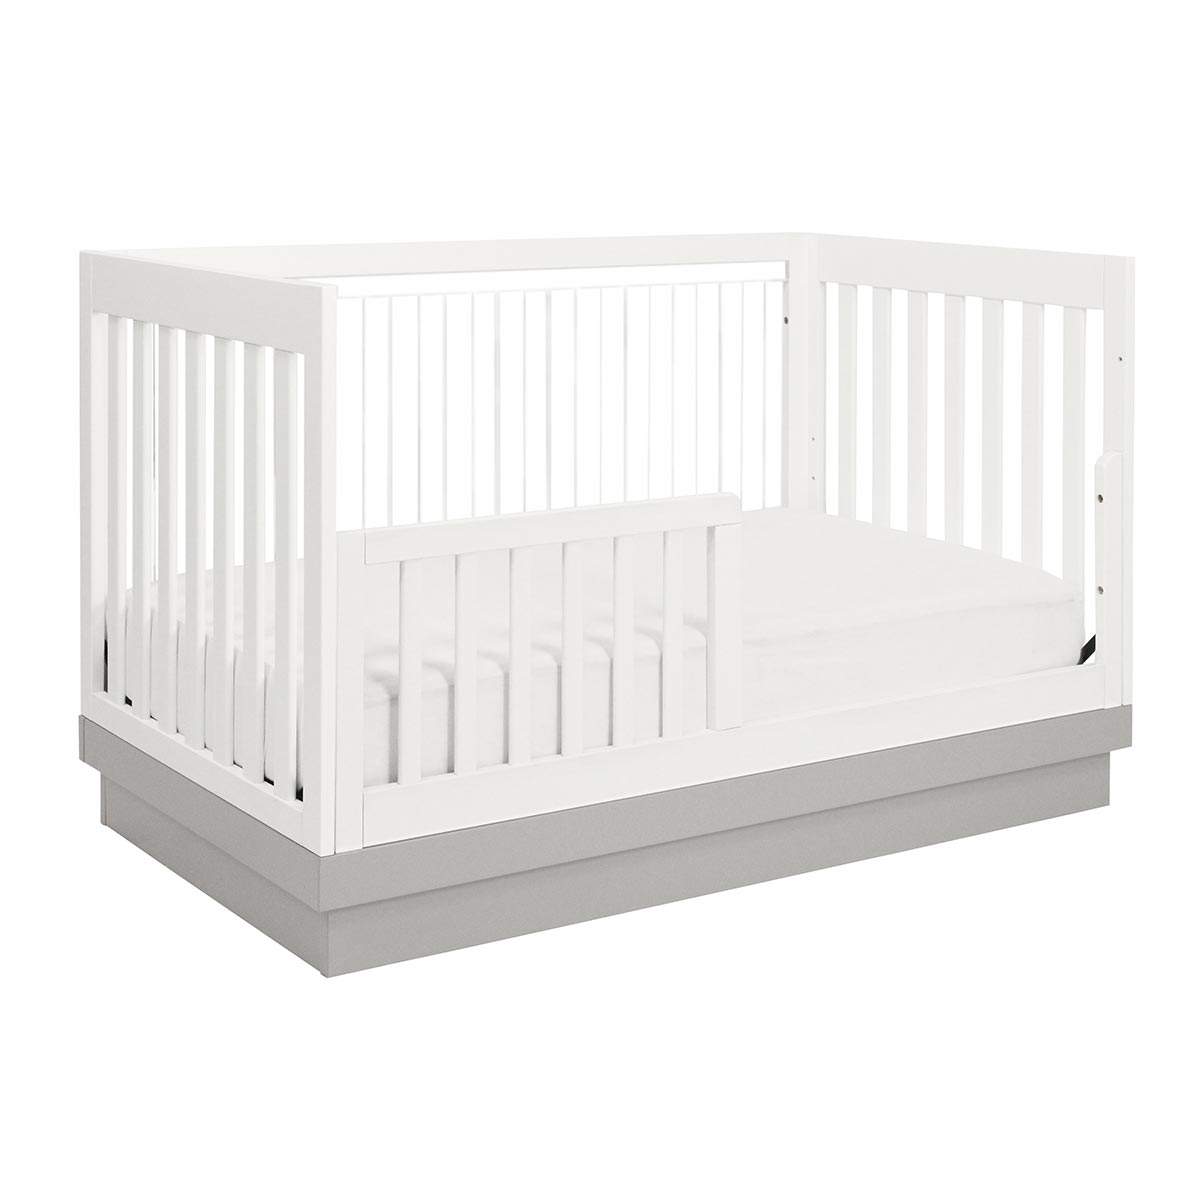 babyletto  piece nursery set  acrylic harlow in convertible  - babyletto  piece nursery set  acrylic harlow in convertible crib andmodo  drawer dresser in white free shipping